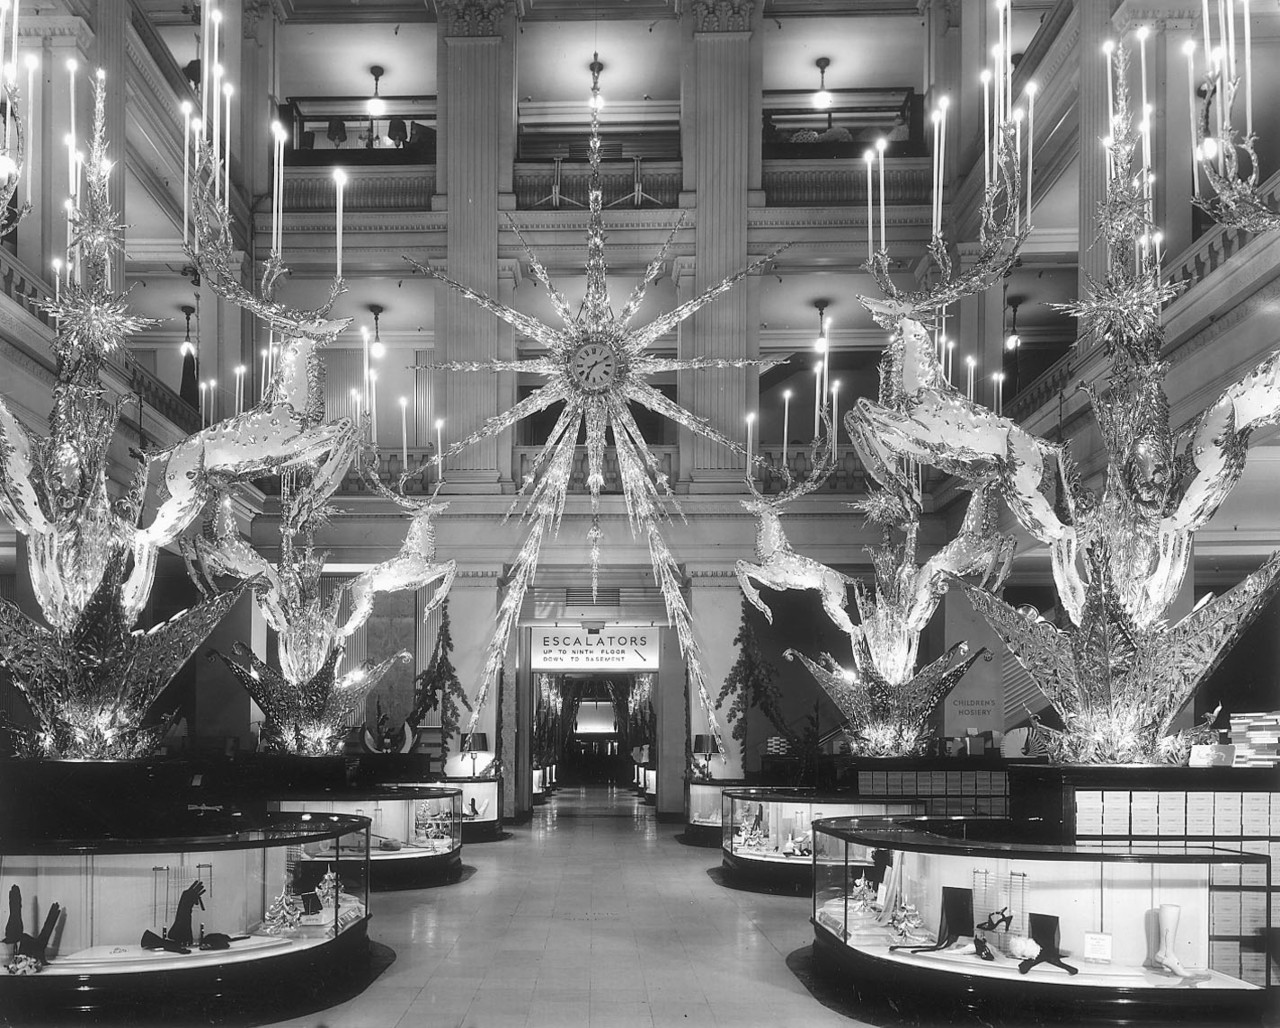 Marshall Field S Historic Christmas Decorations Wendycity